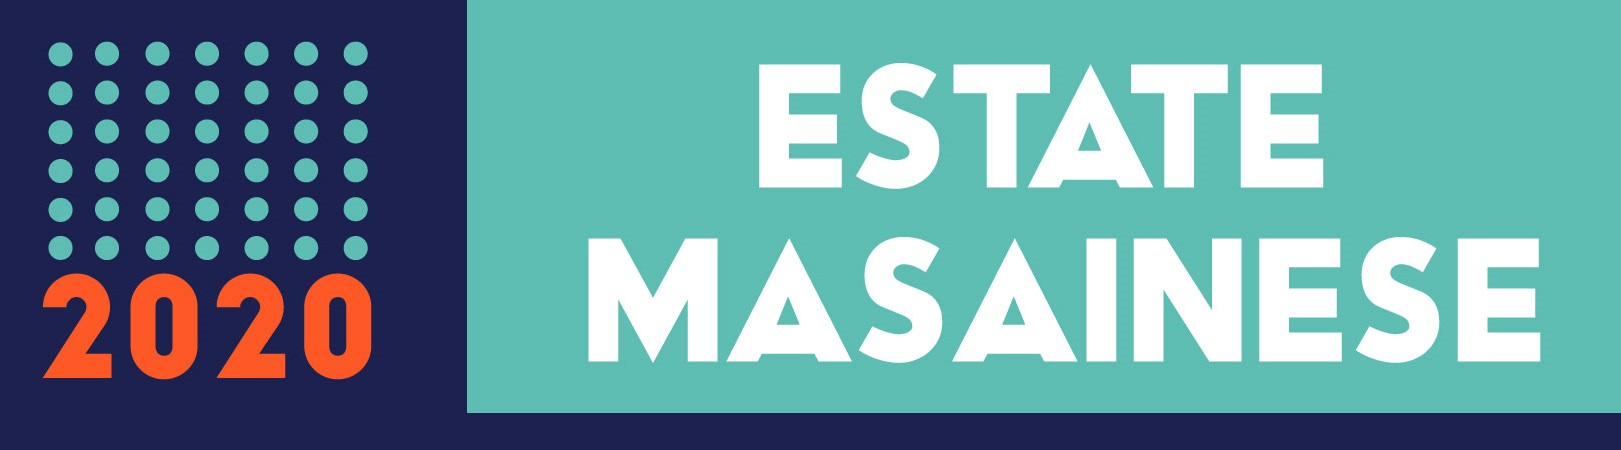 ESTATE MASAINESE 2020